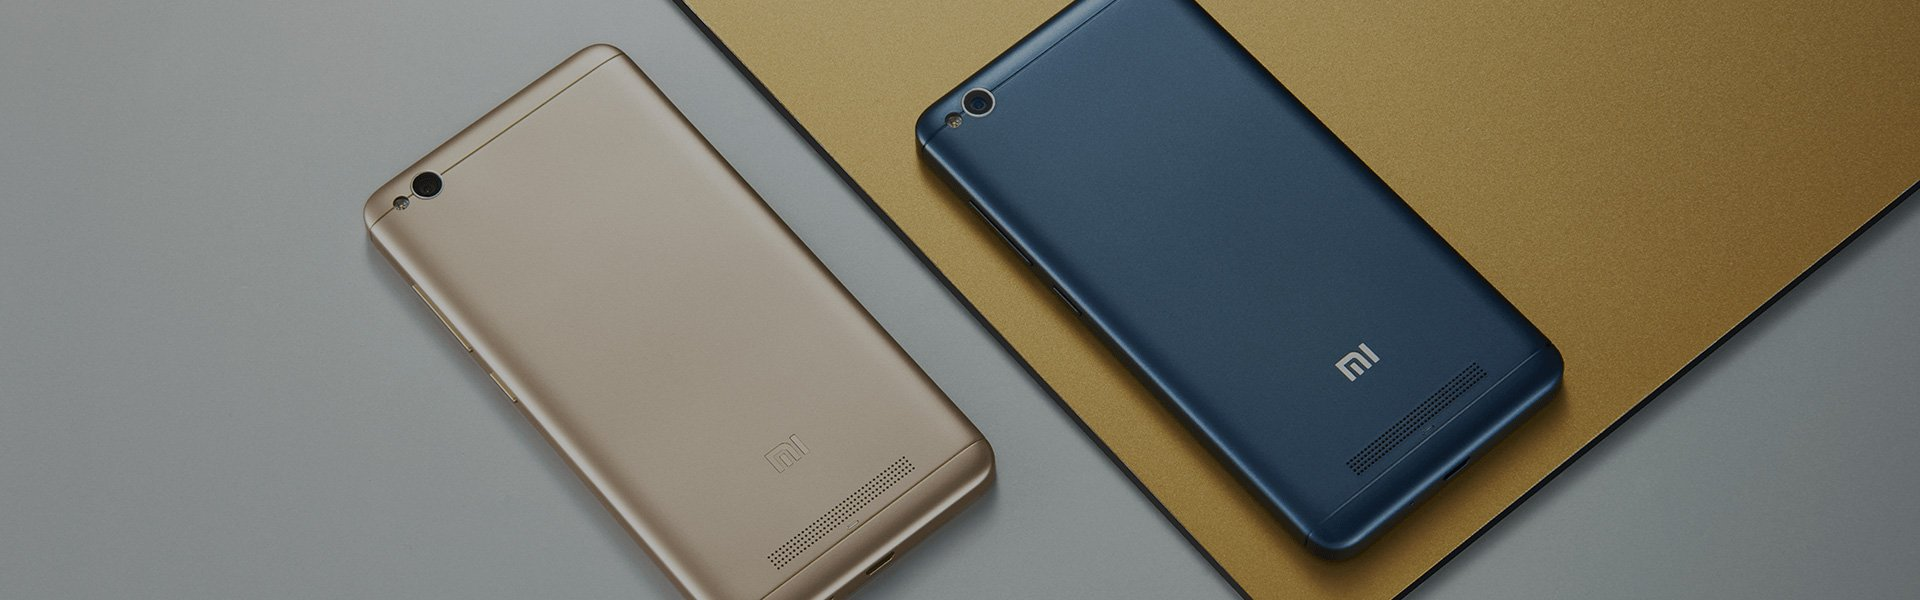 Redmi 4A Review:<br>One of the best entry-level smartphones